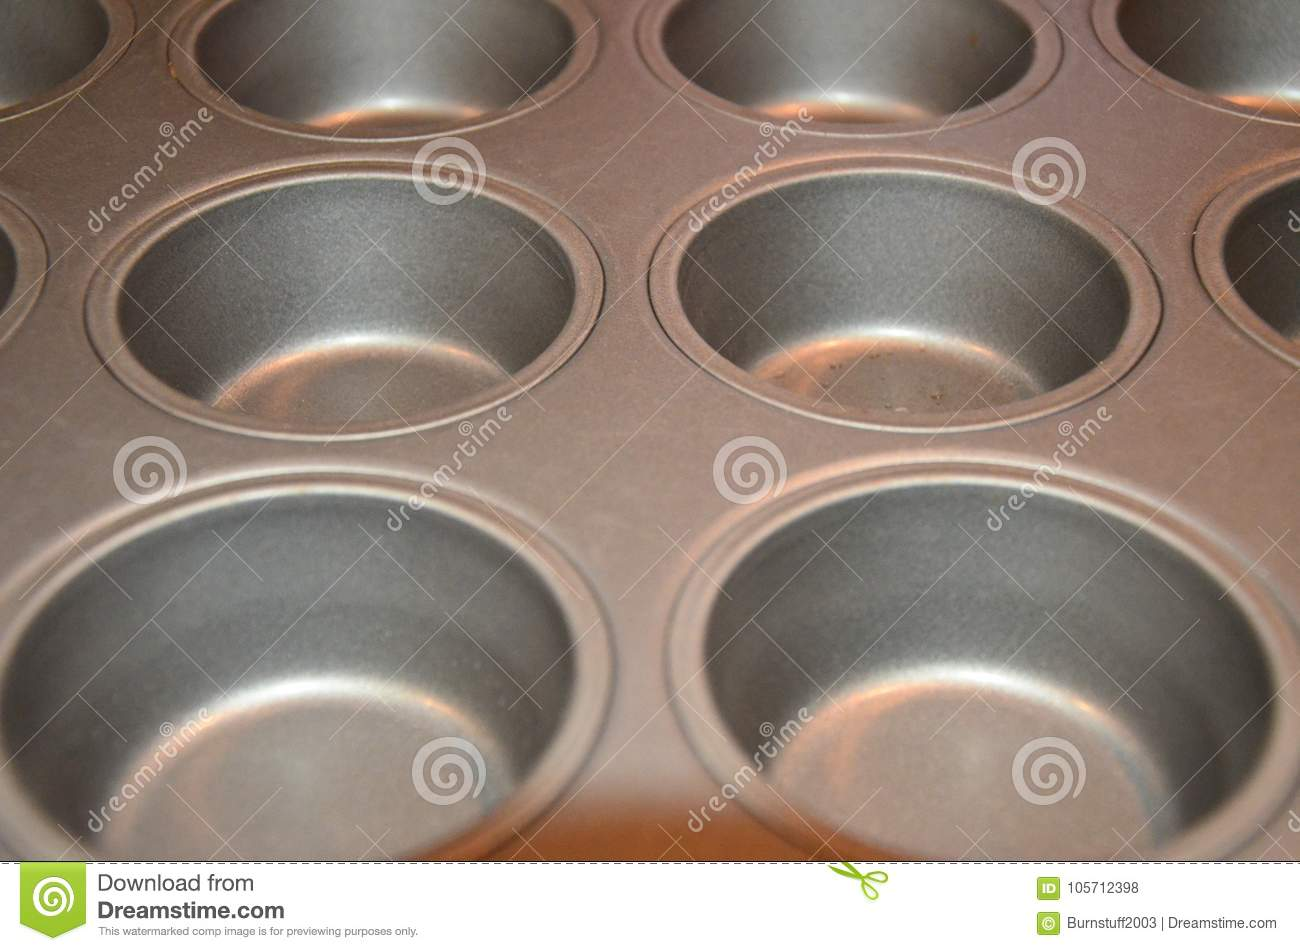 Christmas Dinner In A Tin.Christmas Dinner Yorkshire Puddings Baking Tin For Cooking